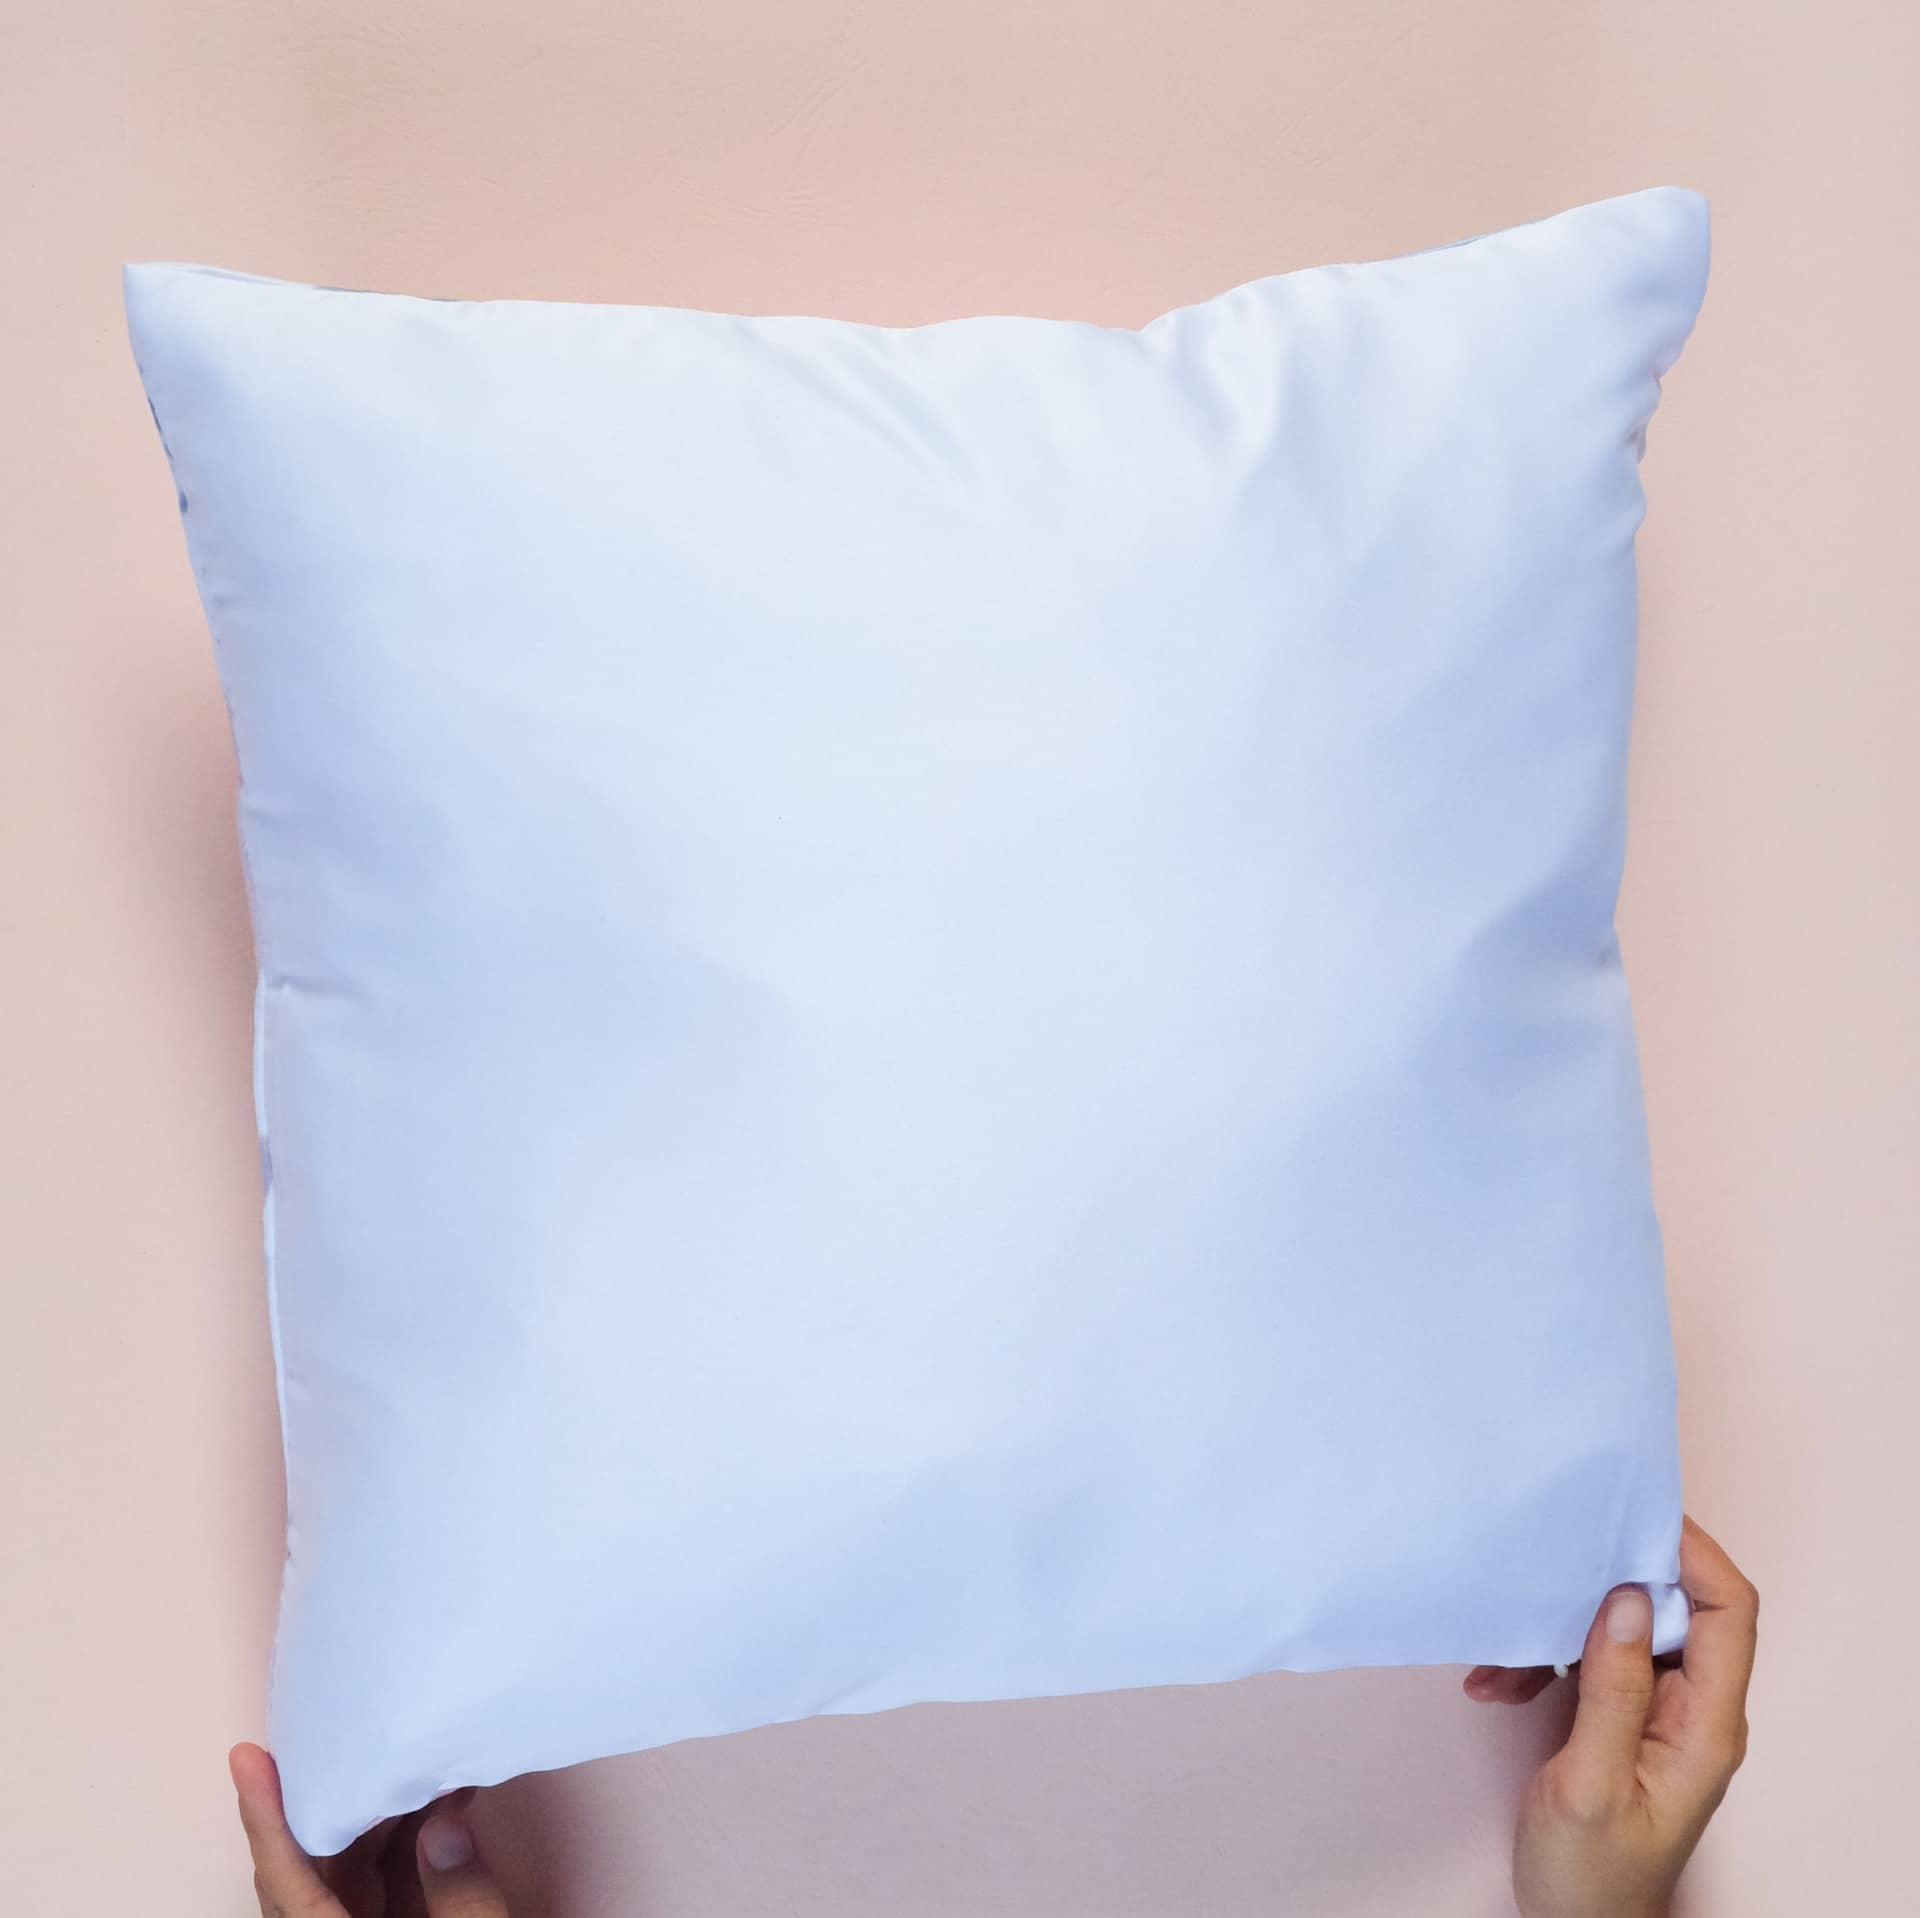 White pillow on pink background